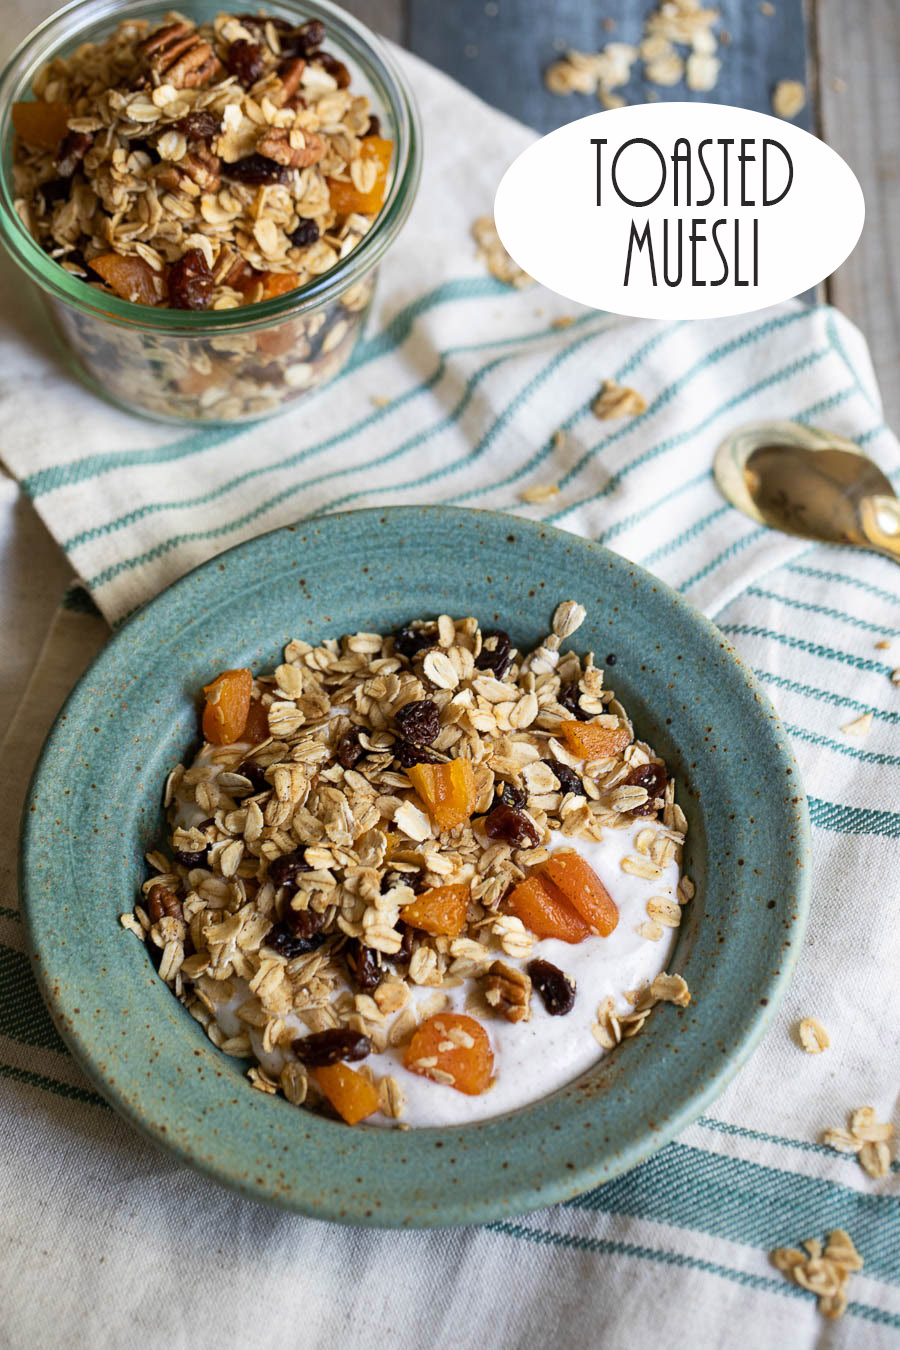 Toasted Muesli with Yogurt. This delicious, healthy breakfast recipe is a winner. Kid-friendly oat and fruit recipe. Served with your yogurt of choice for a hearty, filling breakfast. #breakfast #muesli #yogurt #vegetarian #healthy